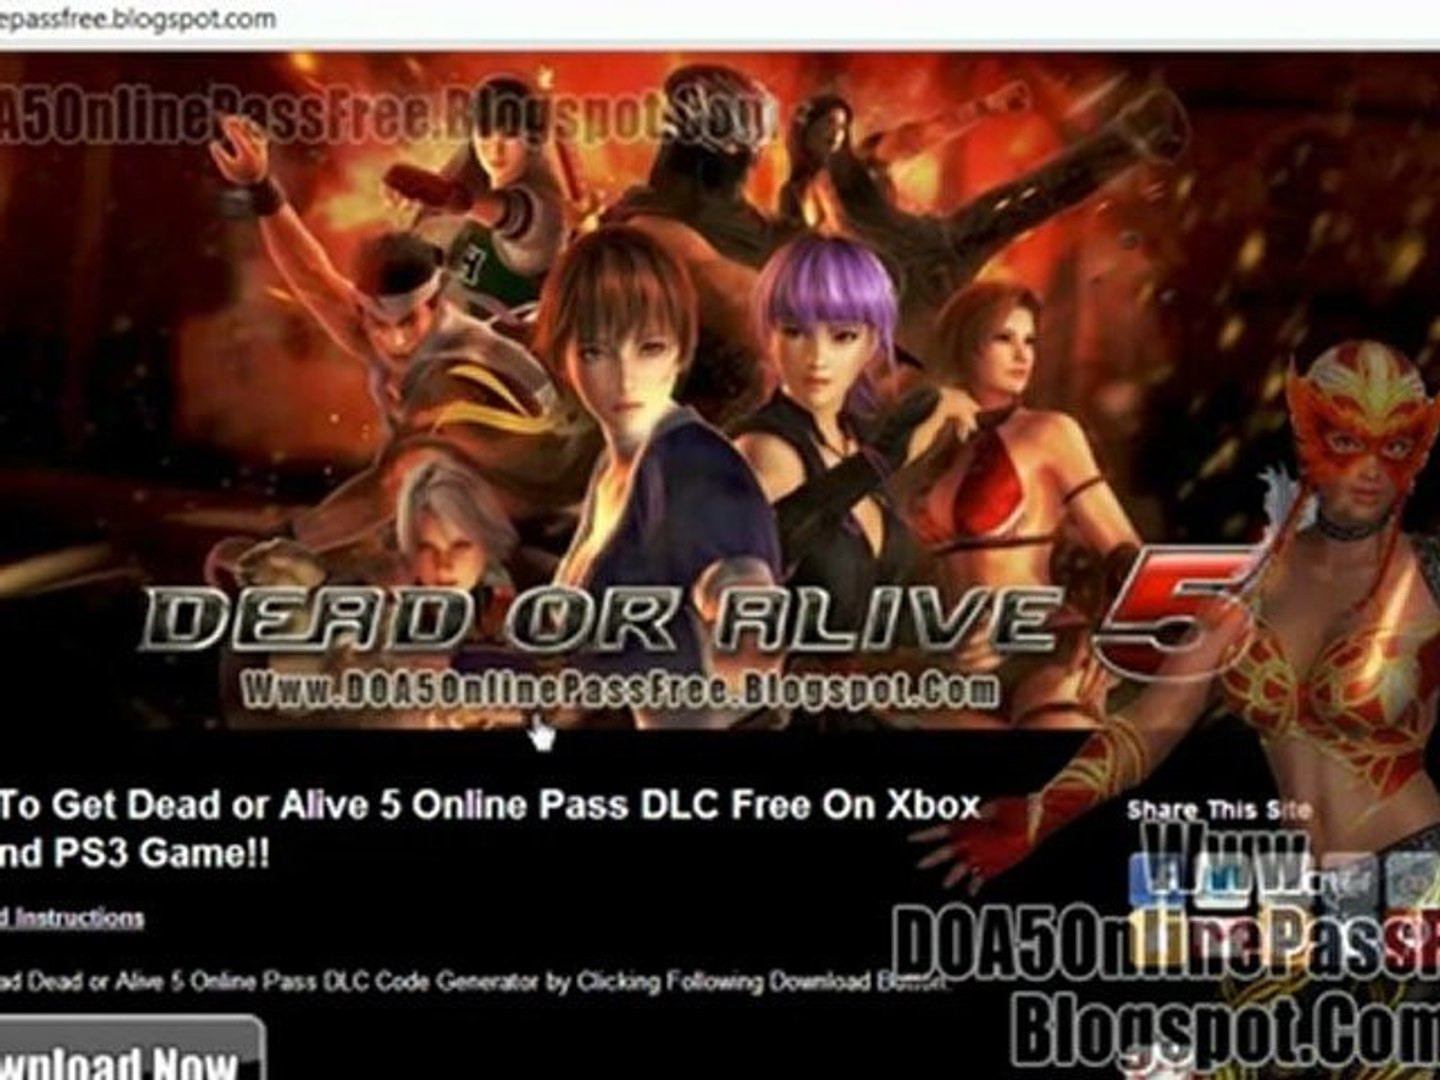 How To Get Dead Or Alive 5 Online Pass Leaked Codes Free Video